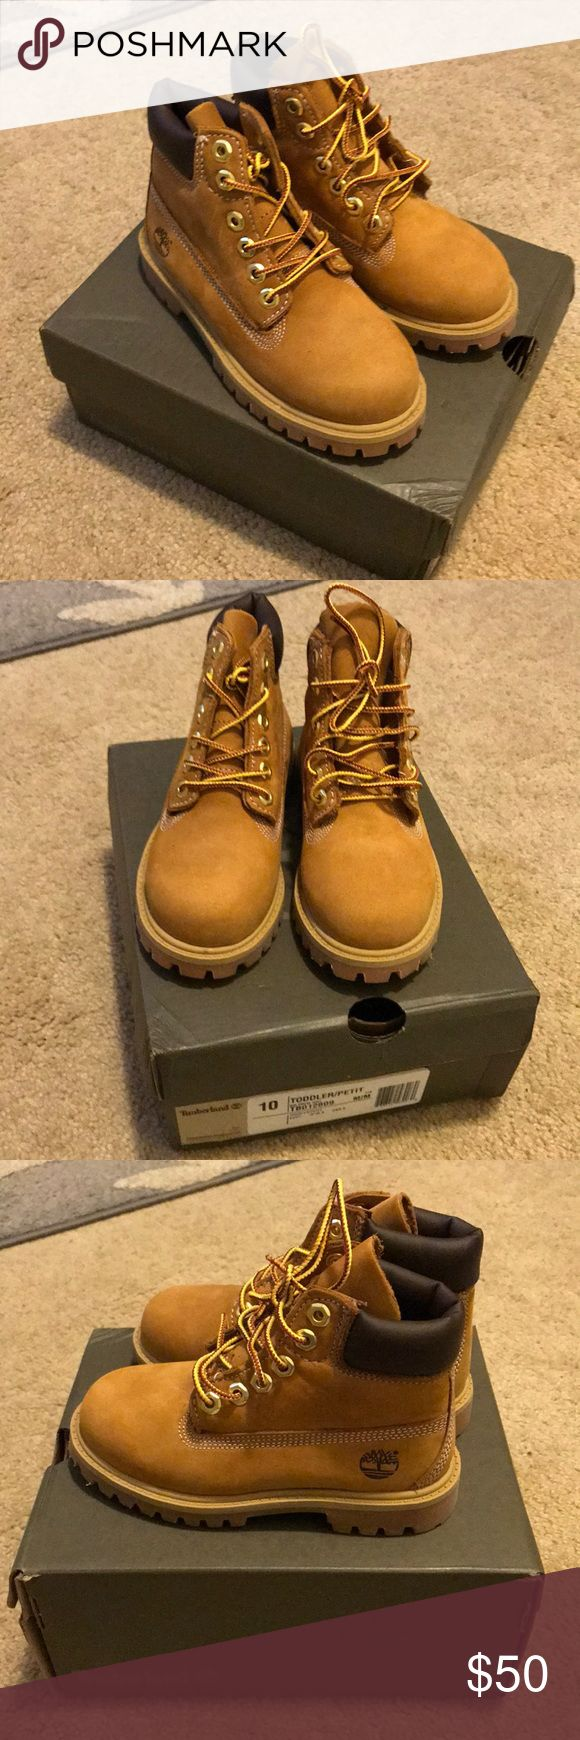 NWT! Toddler Timberland Boots NWT! Toddler Timberland Boots • Size 10 • 100% Waterproof • Never Worn • Excellent Condition Timberland Shoes Boots